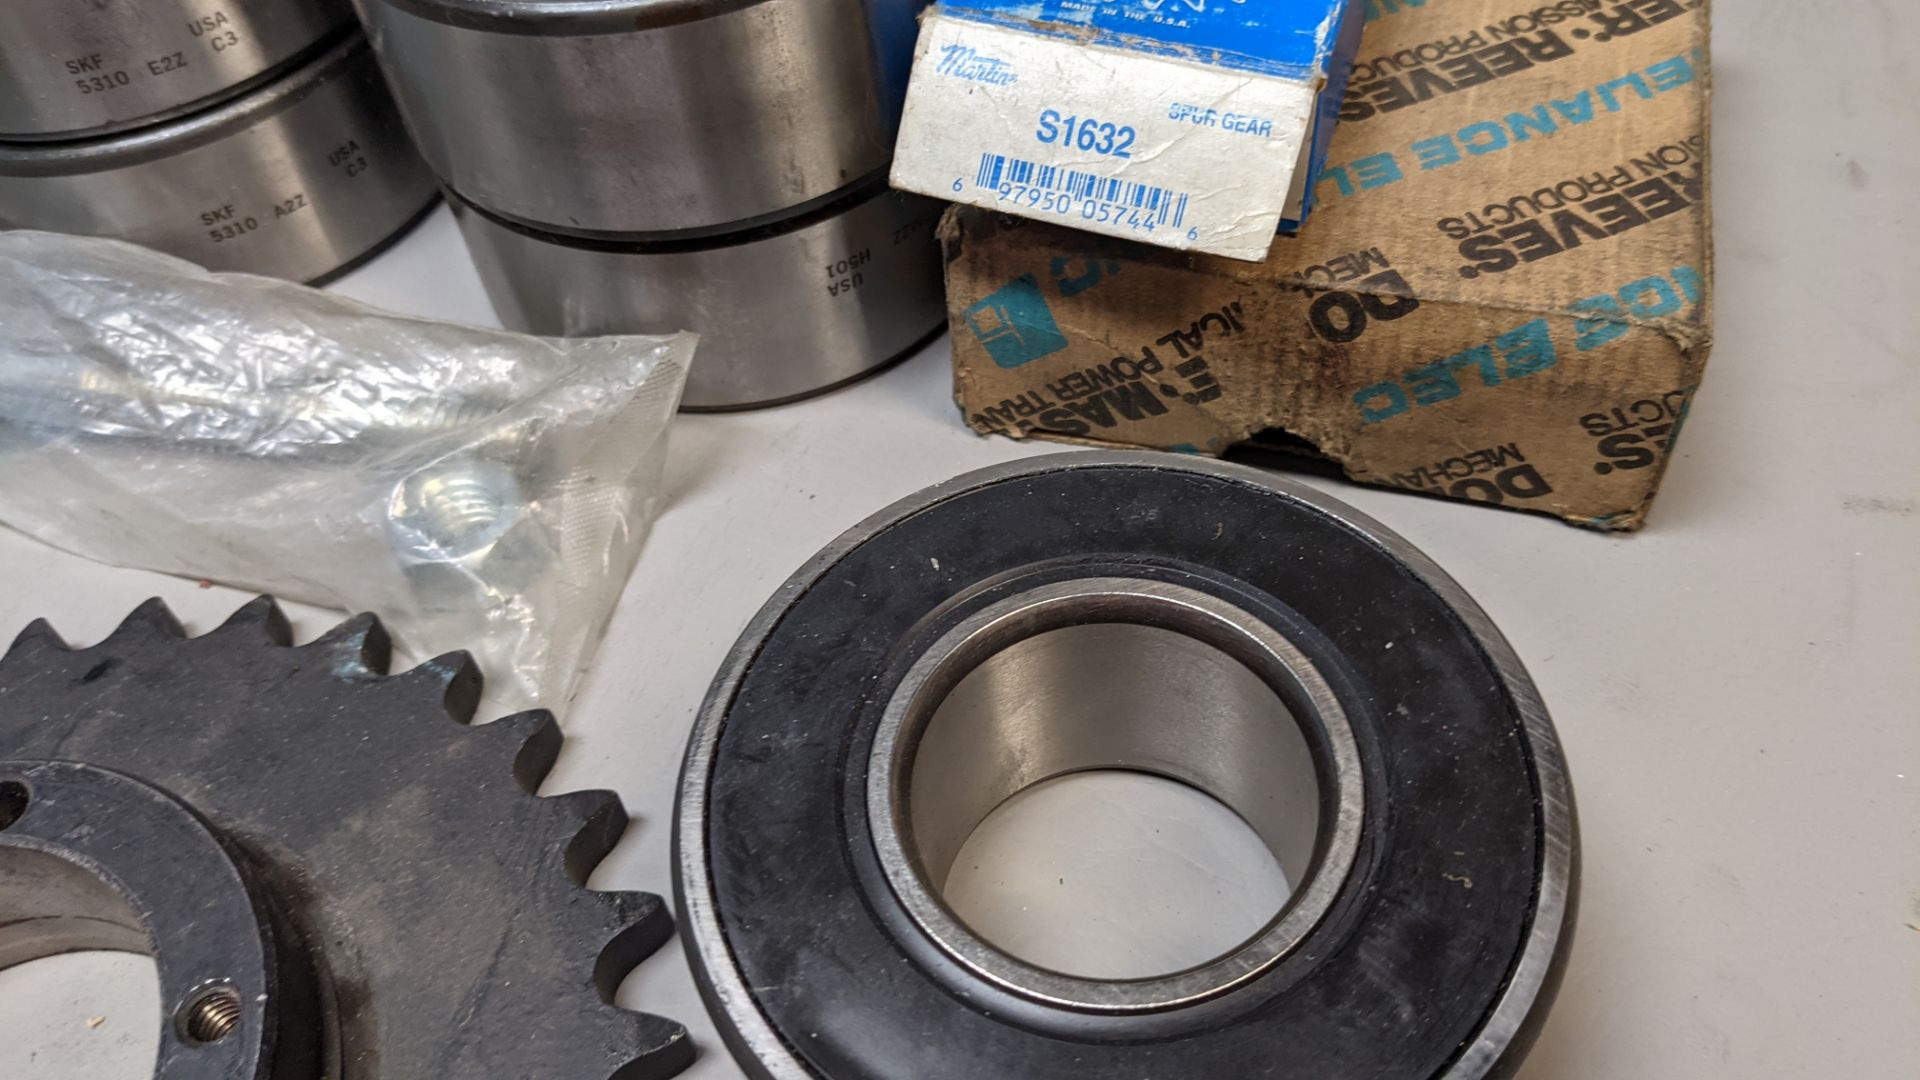 LOT F OBEARINGS AND SPROCKETS - Image 3 of 7